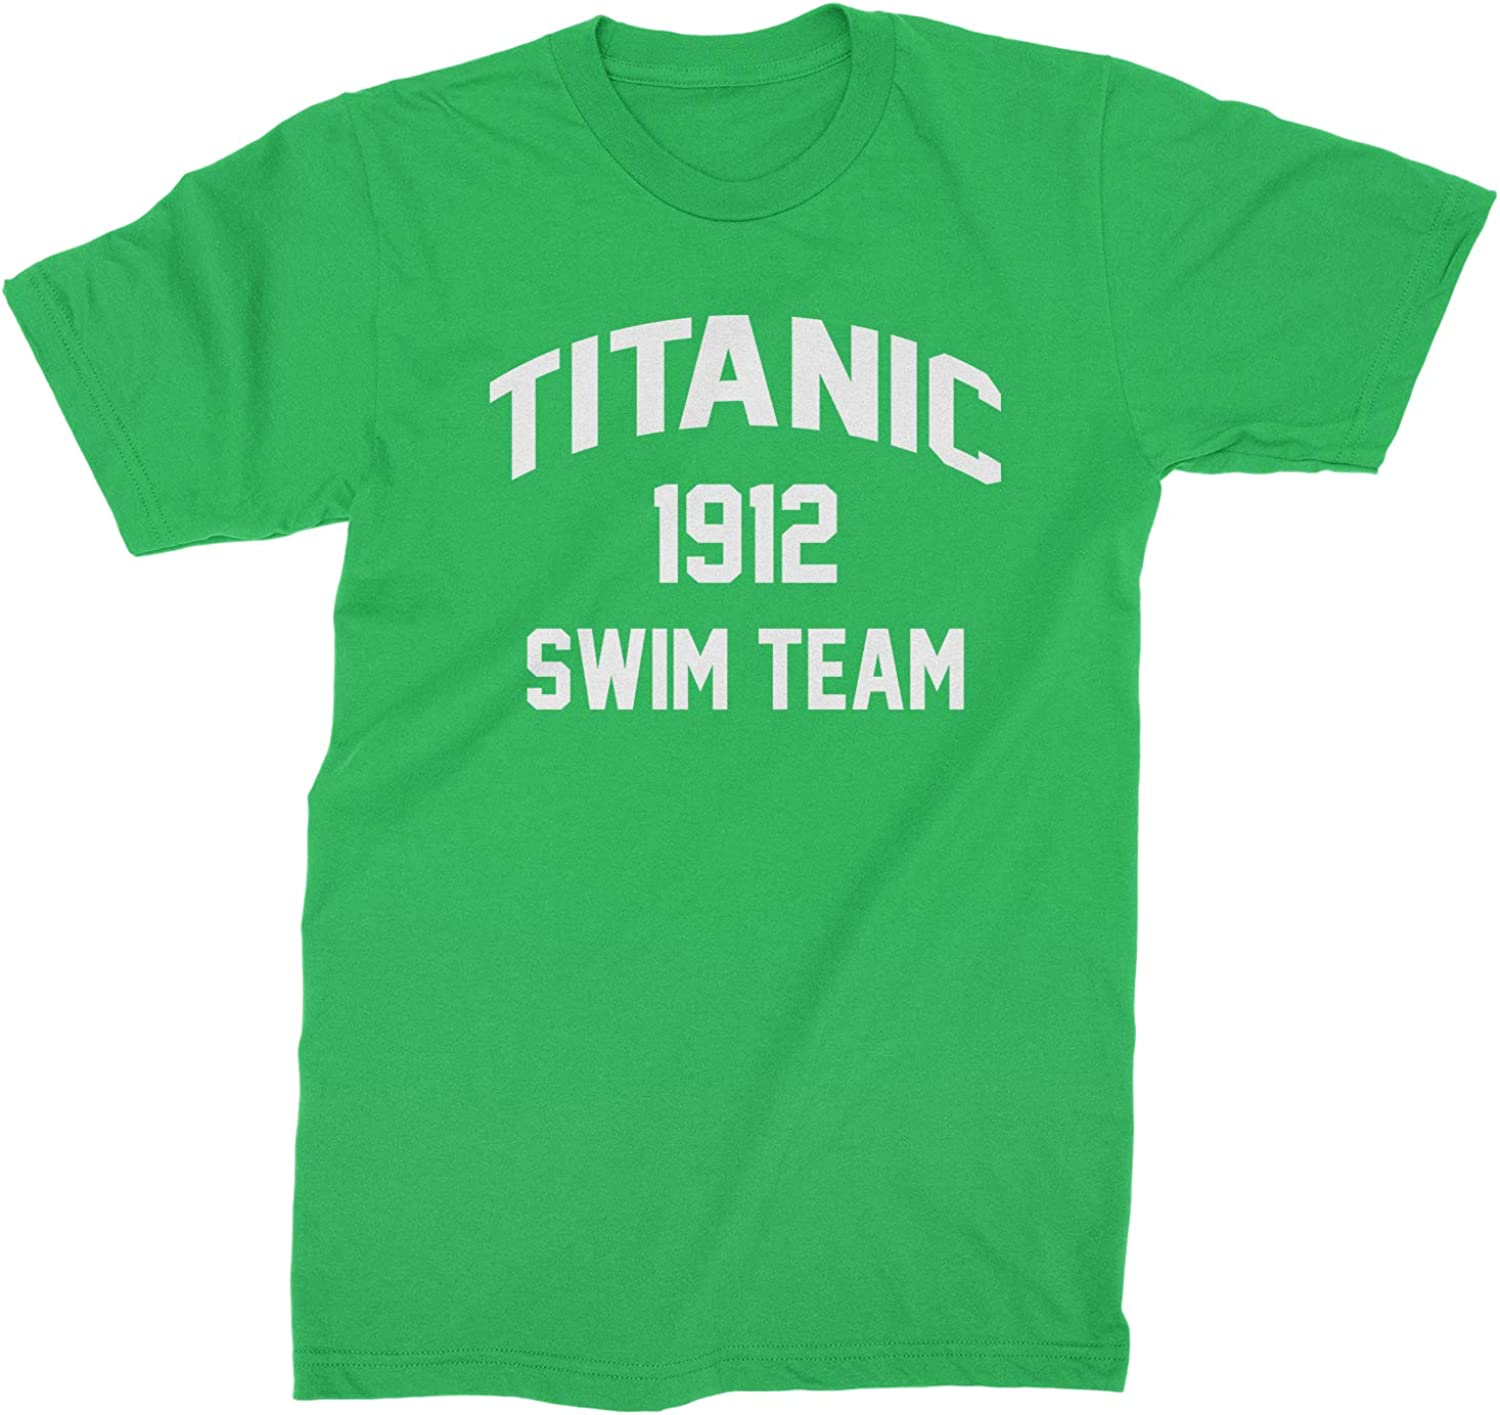 Expression Tees Titanic Swim Team 1912 Funny Tie-Dye Youth-Sized Hoodie